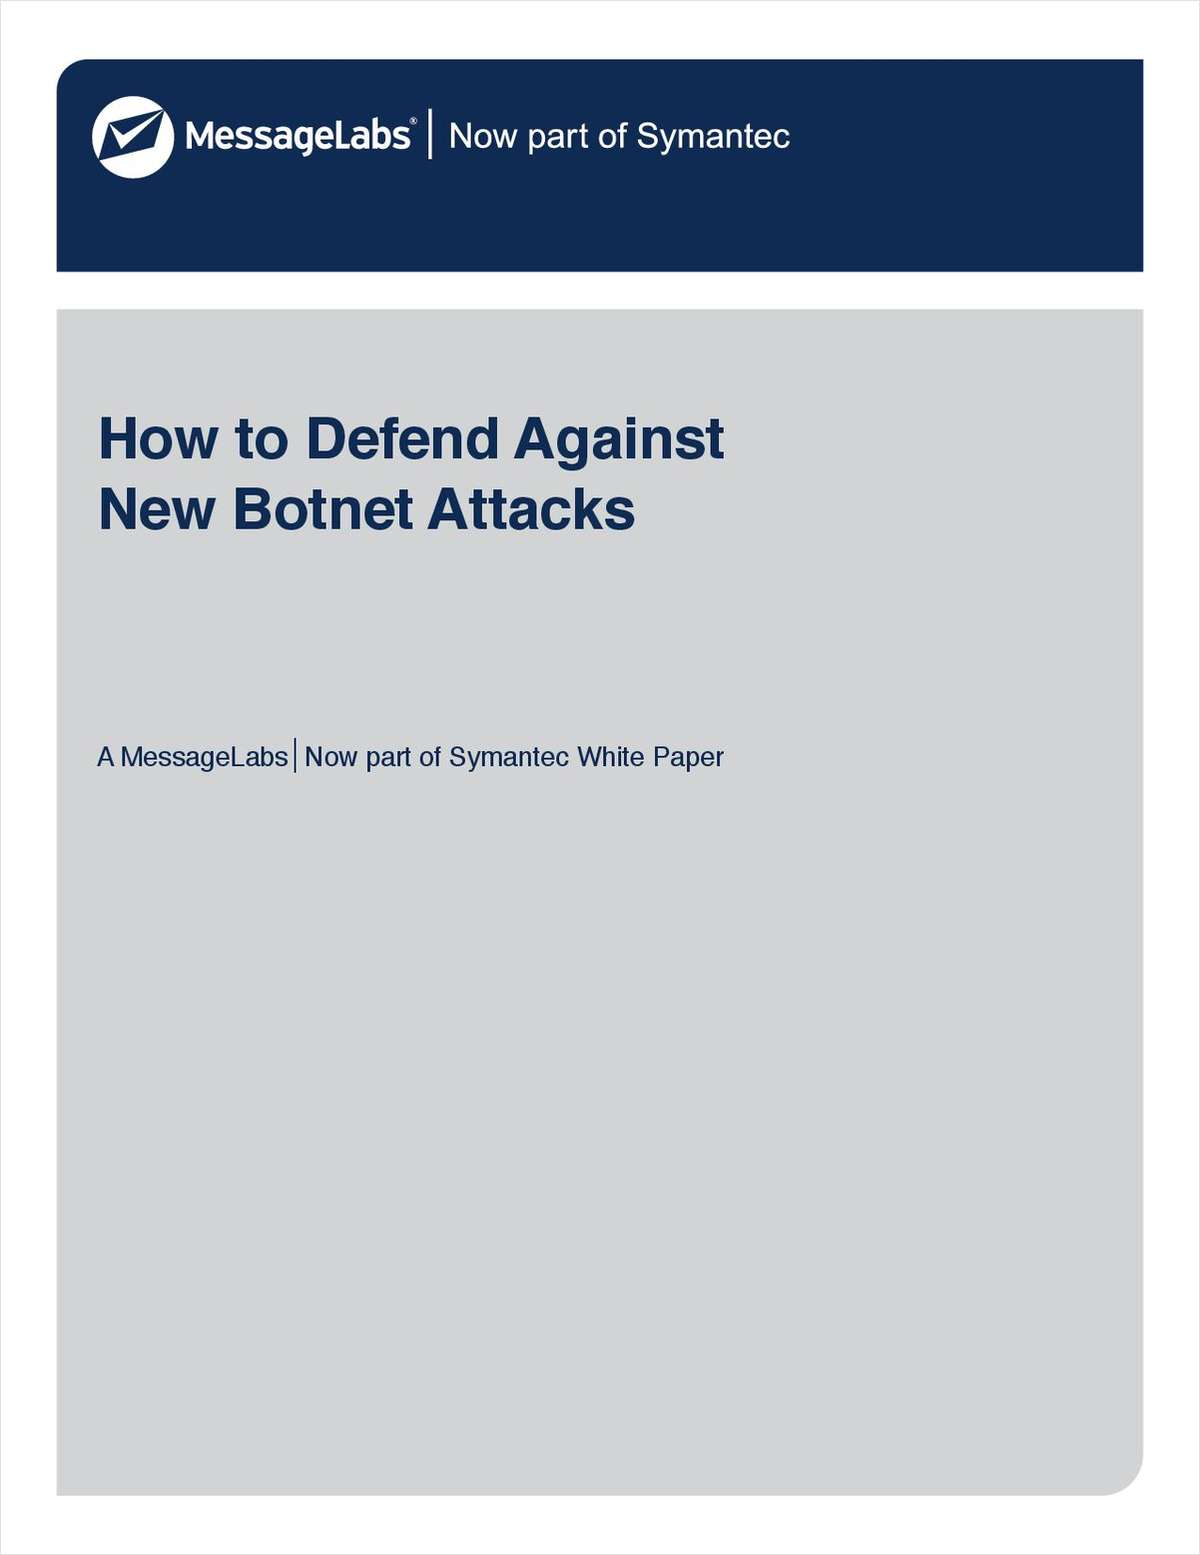 How to Defend Against New Botnet Attacks